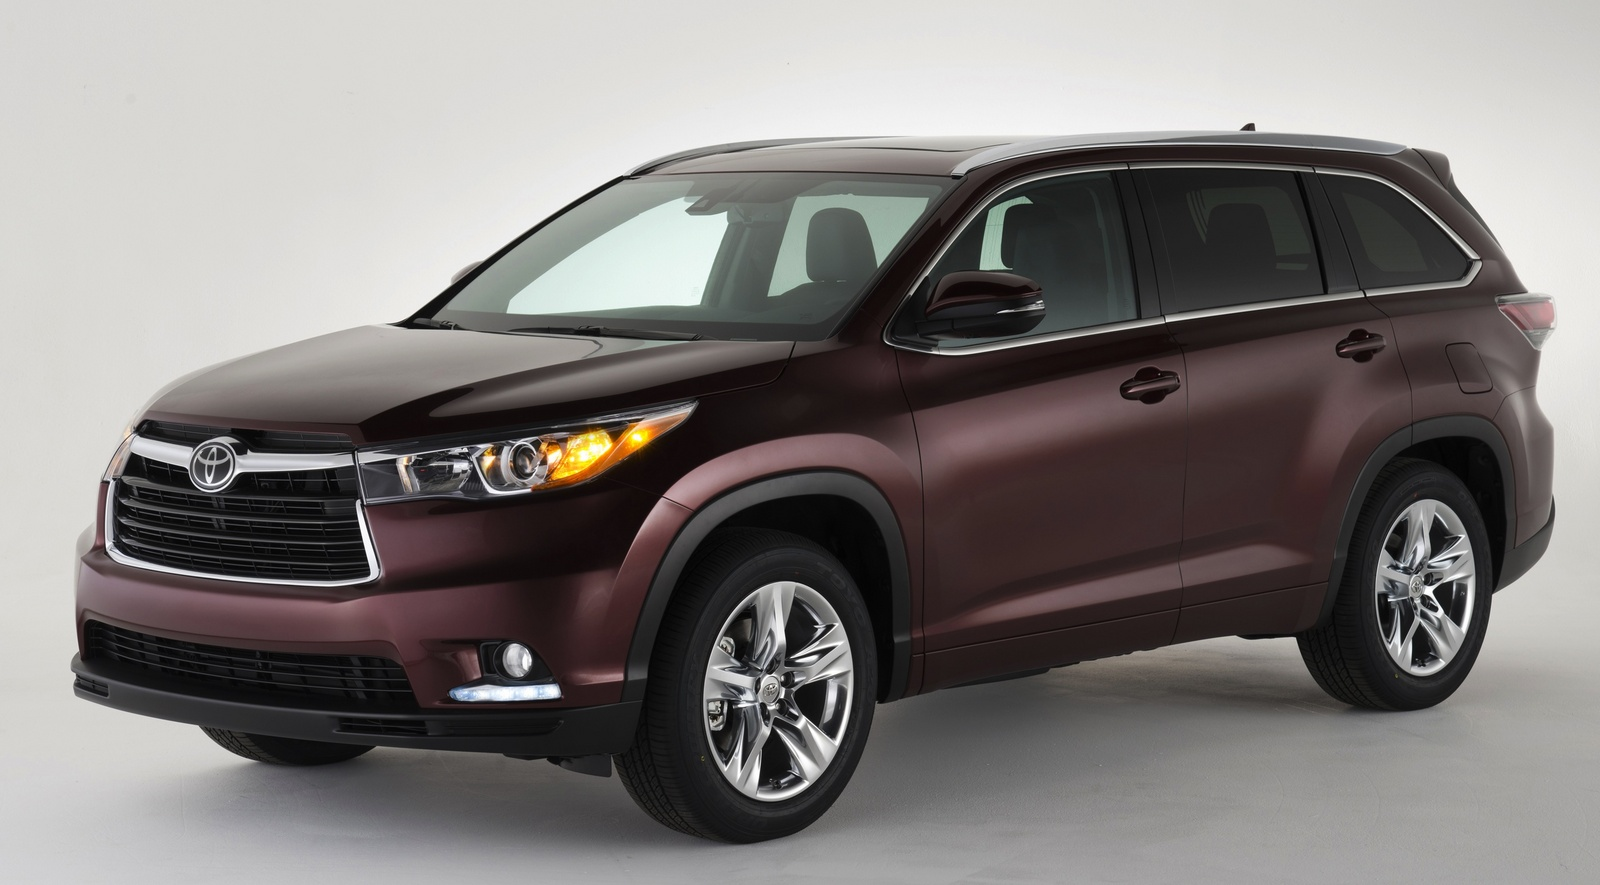 new 2014 2015 toyota highlander for sale cincinnati oh cargurus. Black Bedroom Furniture Sets. Home Design Ideas